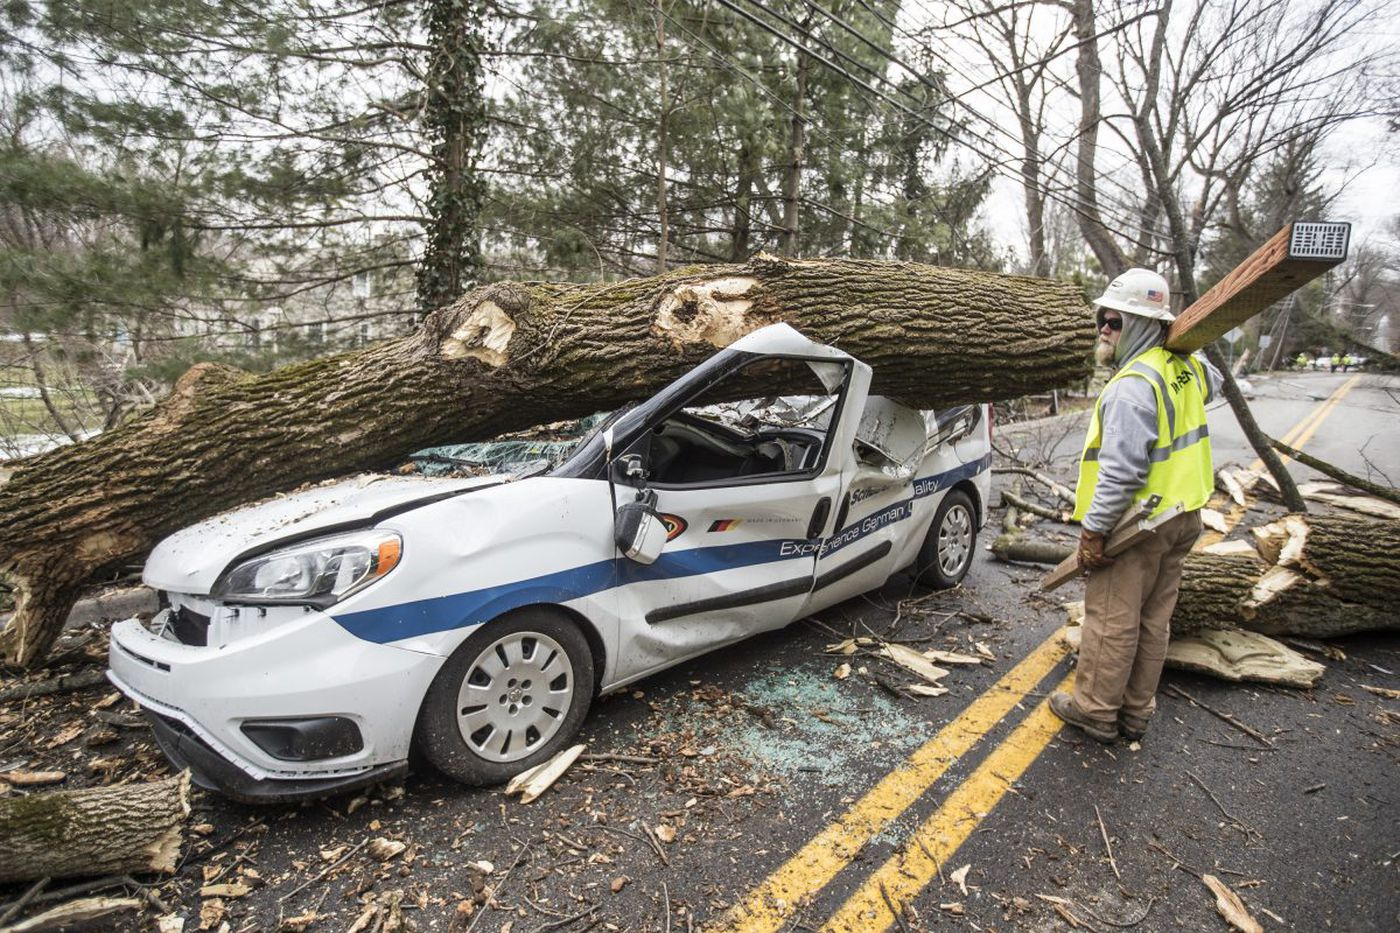 After nor'easter, 'everyday heroes' helped get the power back on | Perspective